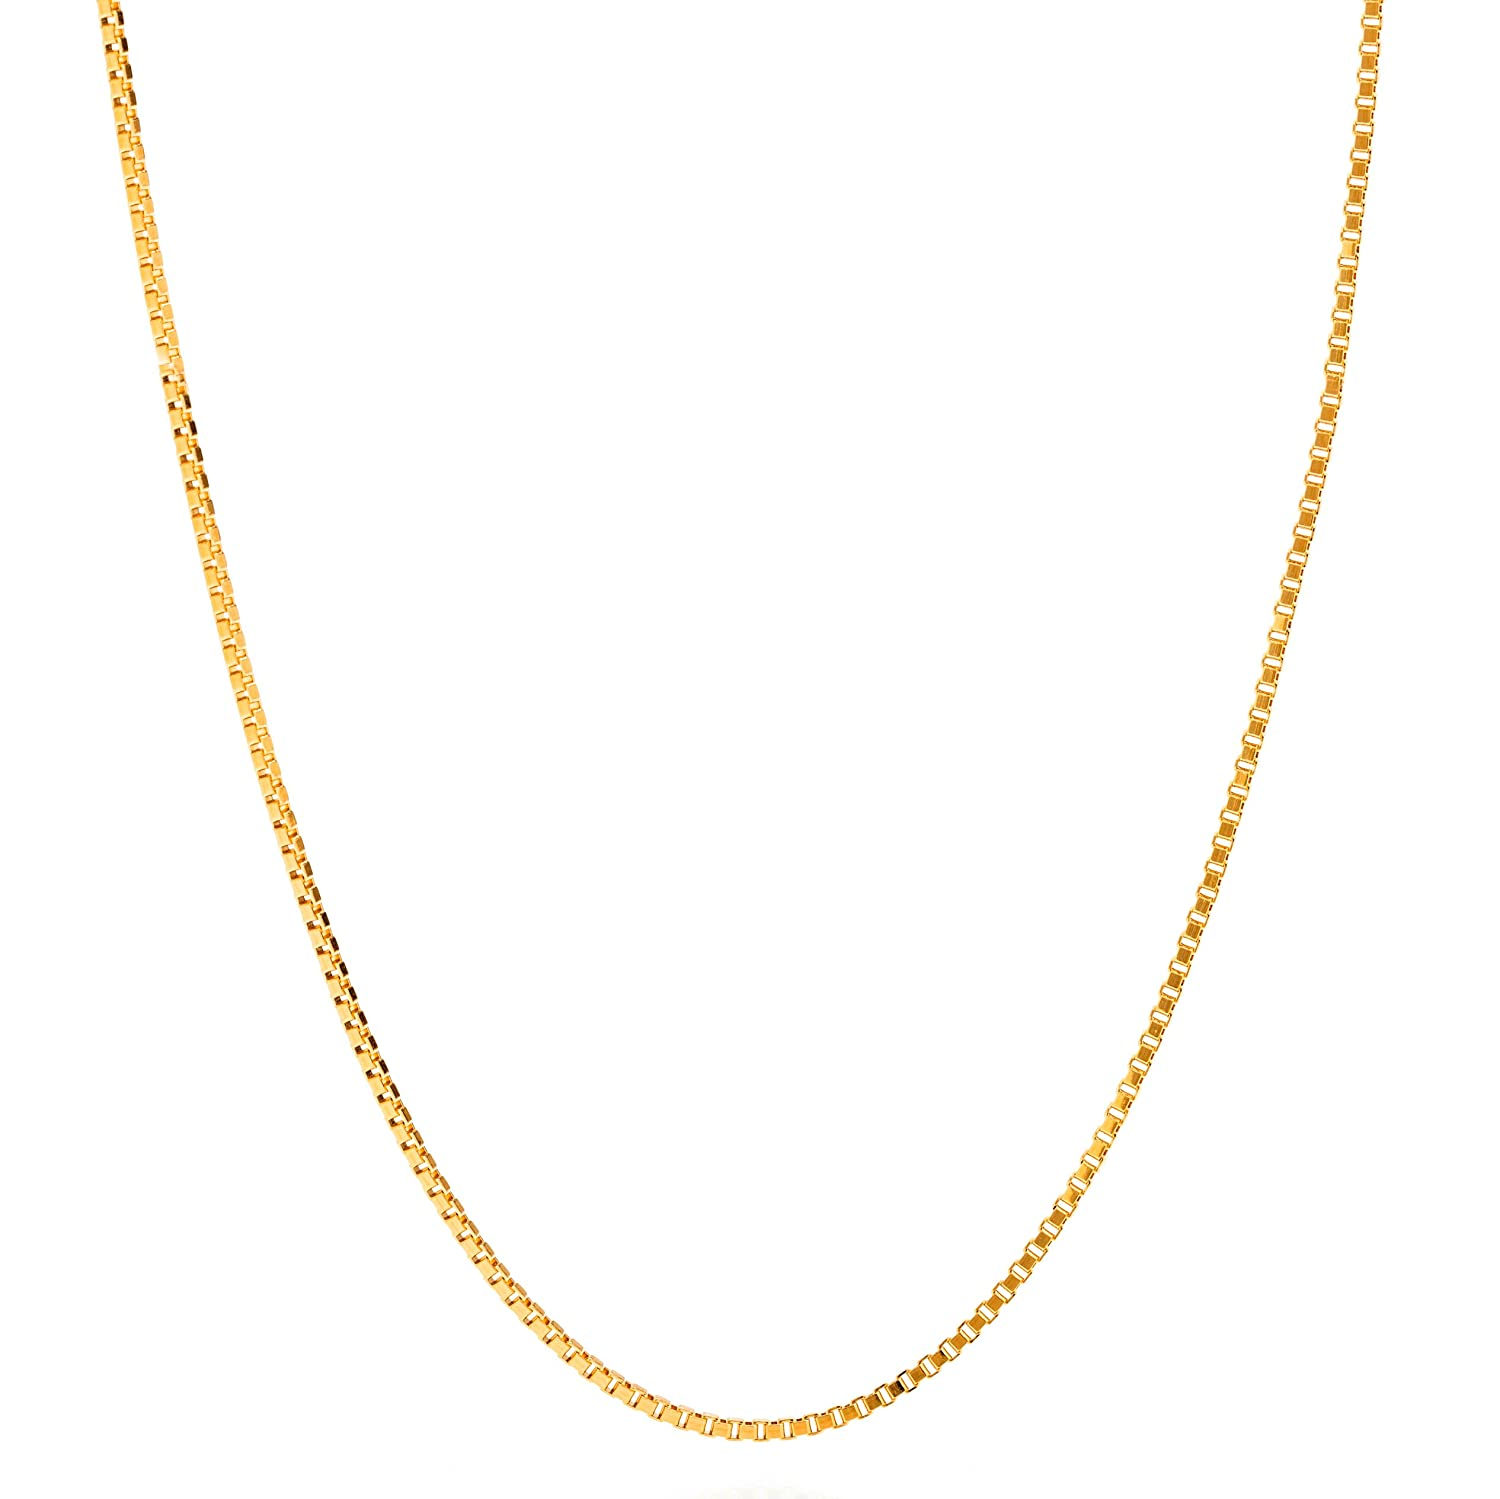 Lifetime Jewelry Gold Necklaces for Women & Men [ 1.4mm Box Chain Necklace ] Up to 20X More 24k Real Gold Plating Than Other Necklace Chain - Pendant Necklace with Free Lifetime Replacement Guarantee Lifetime Products Group 53A